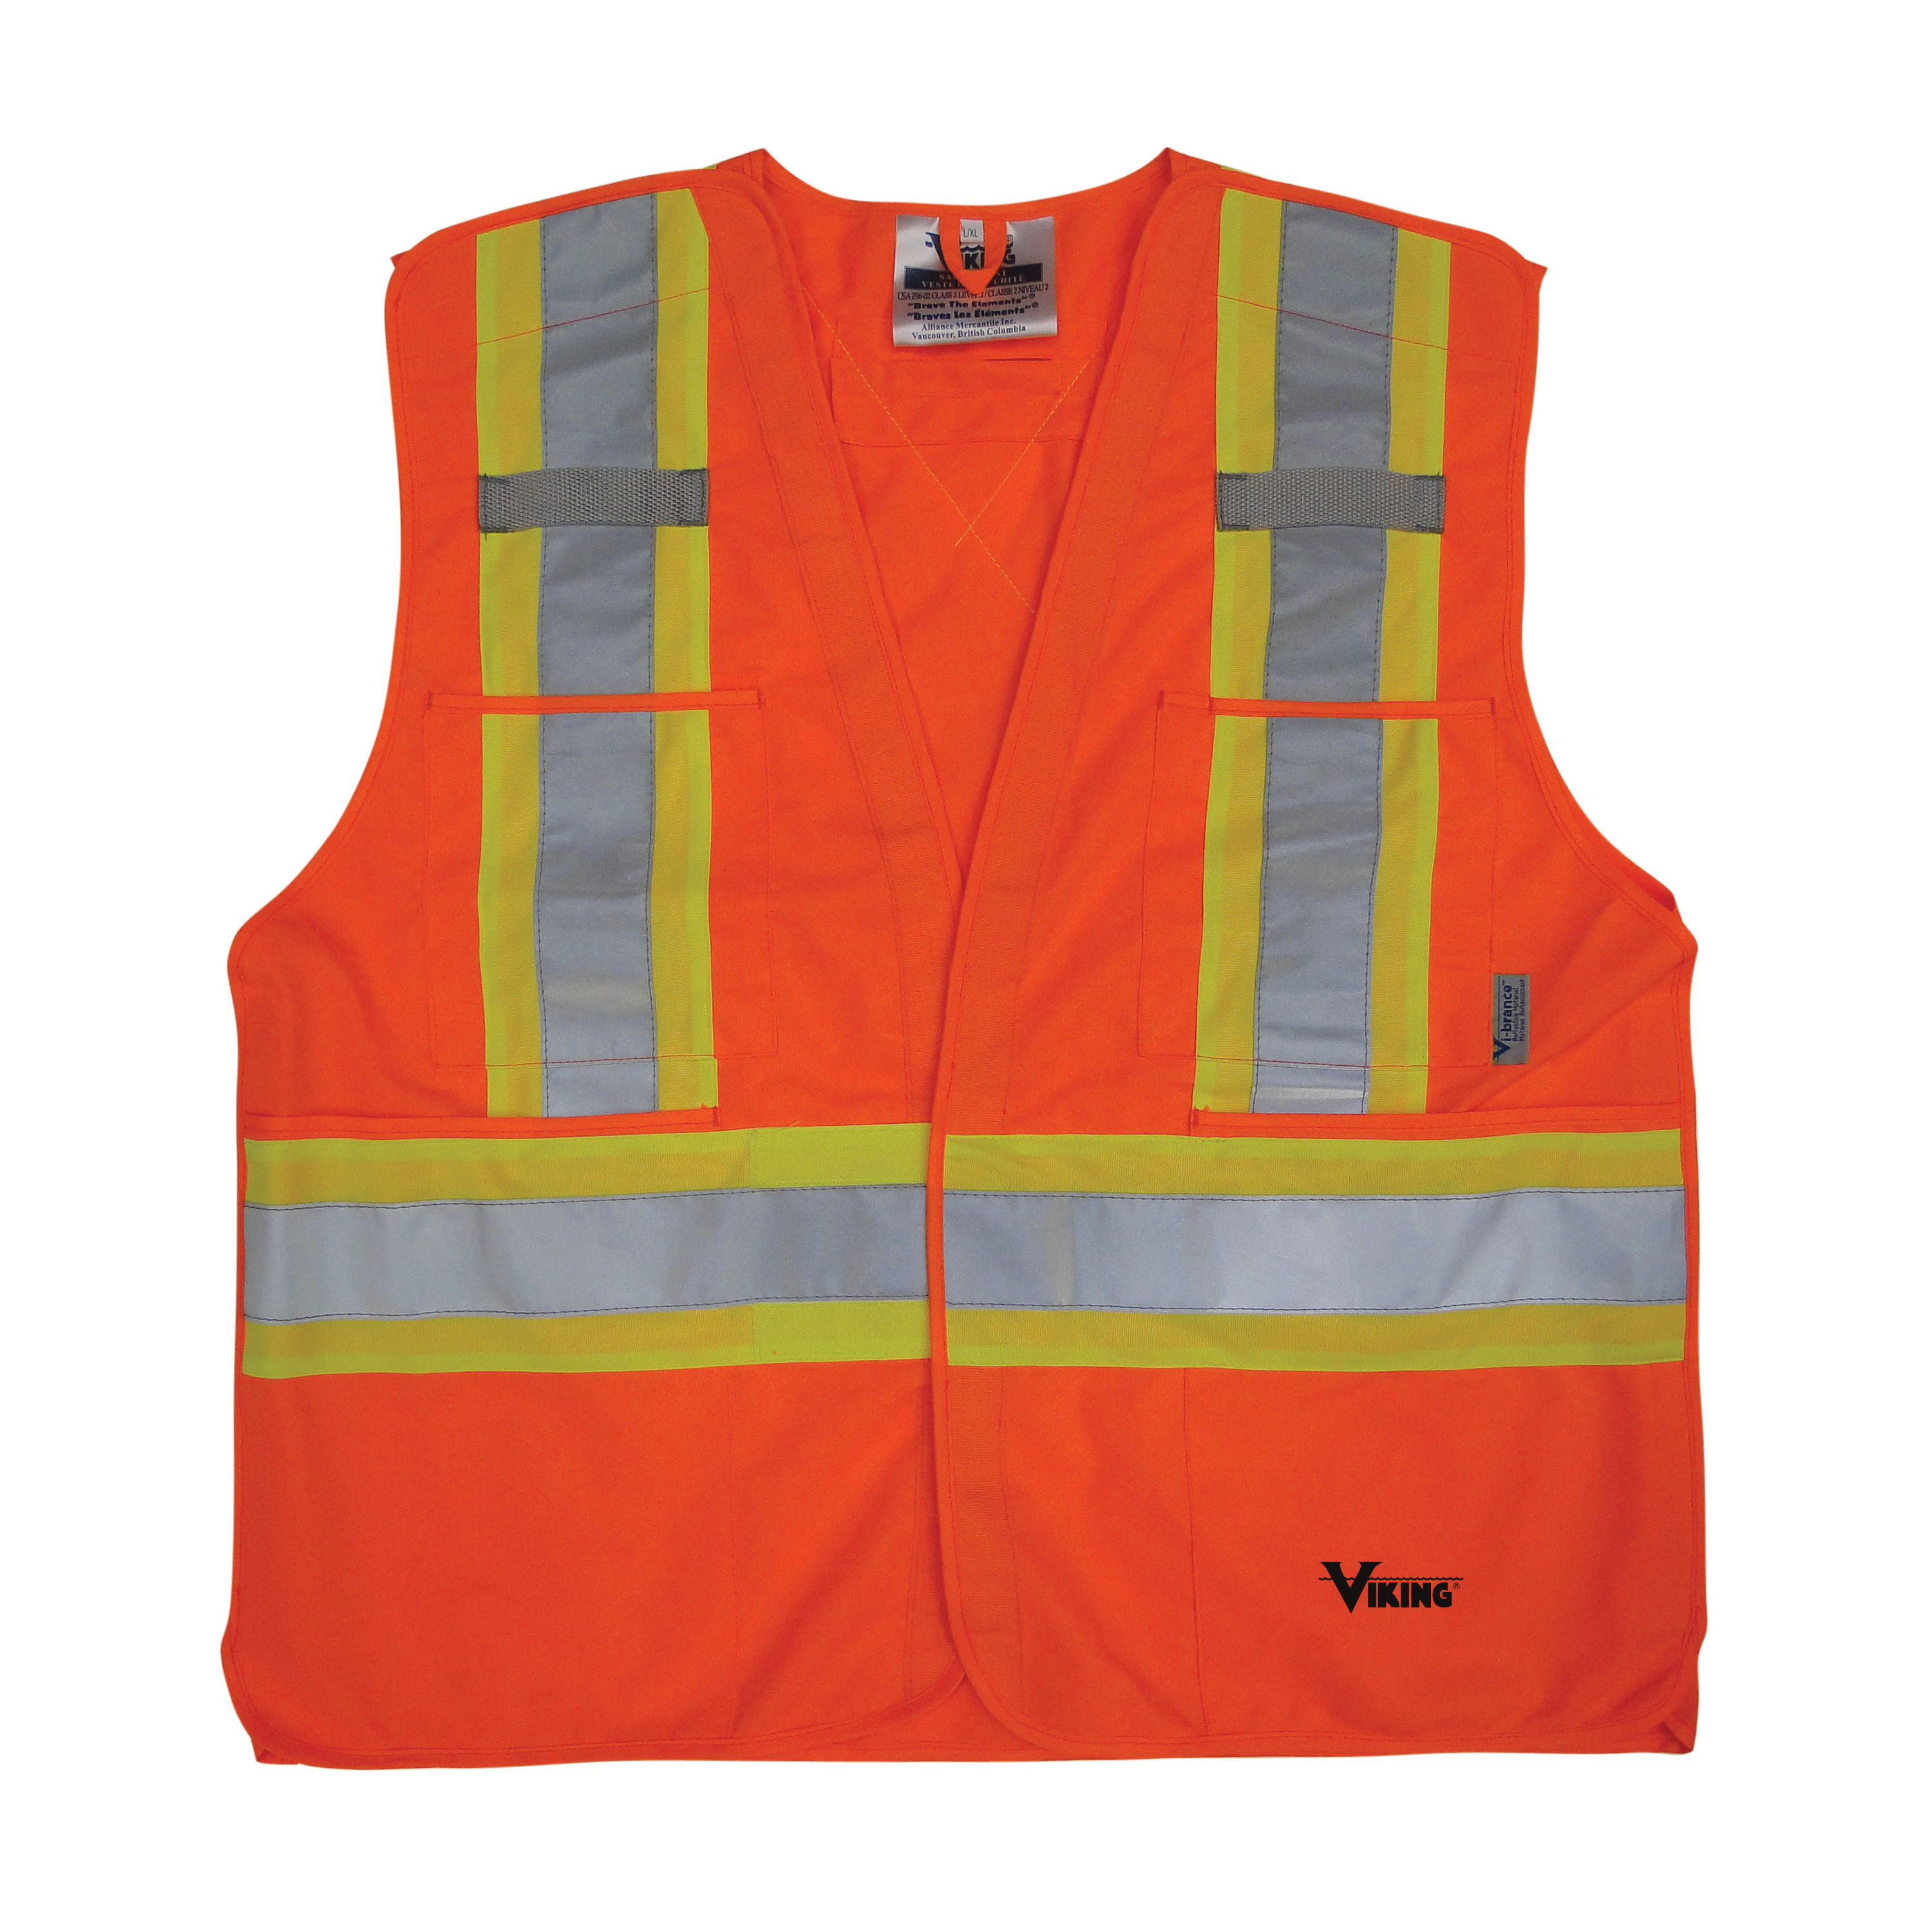 Viking® 6135O-2XL/3XL 5-Point High Visibility Tear Away Safety Vest, 2XL/3XL, Orange, Solid Polyester, Hook and Loop Closure, 4 Pockets, ANSI Class: 2, ANSI/ISEA 107-2015 Type R Class 2 (Not FR)